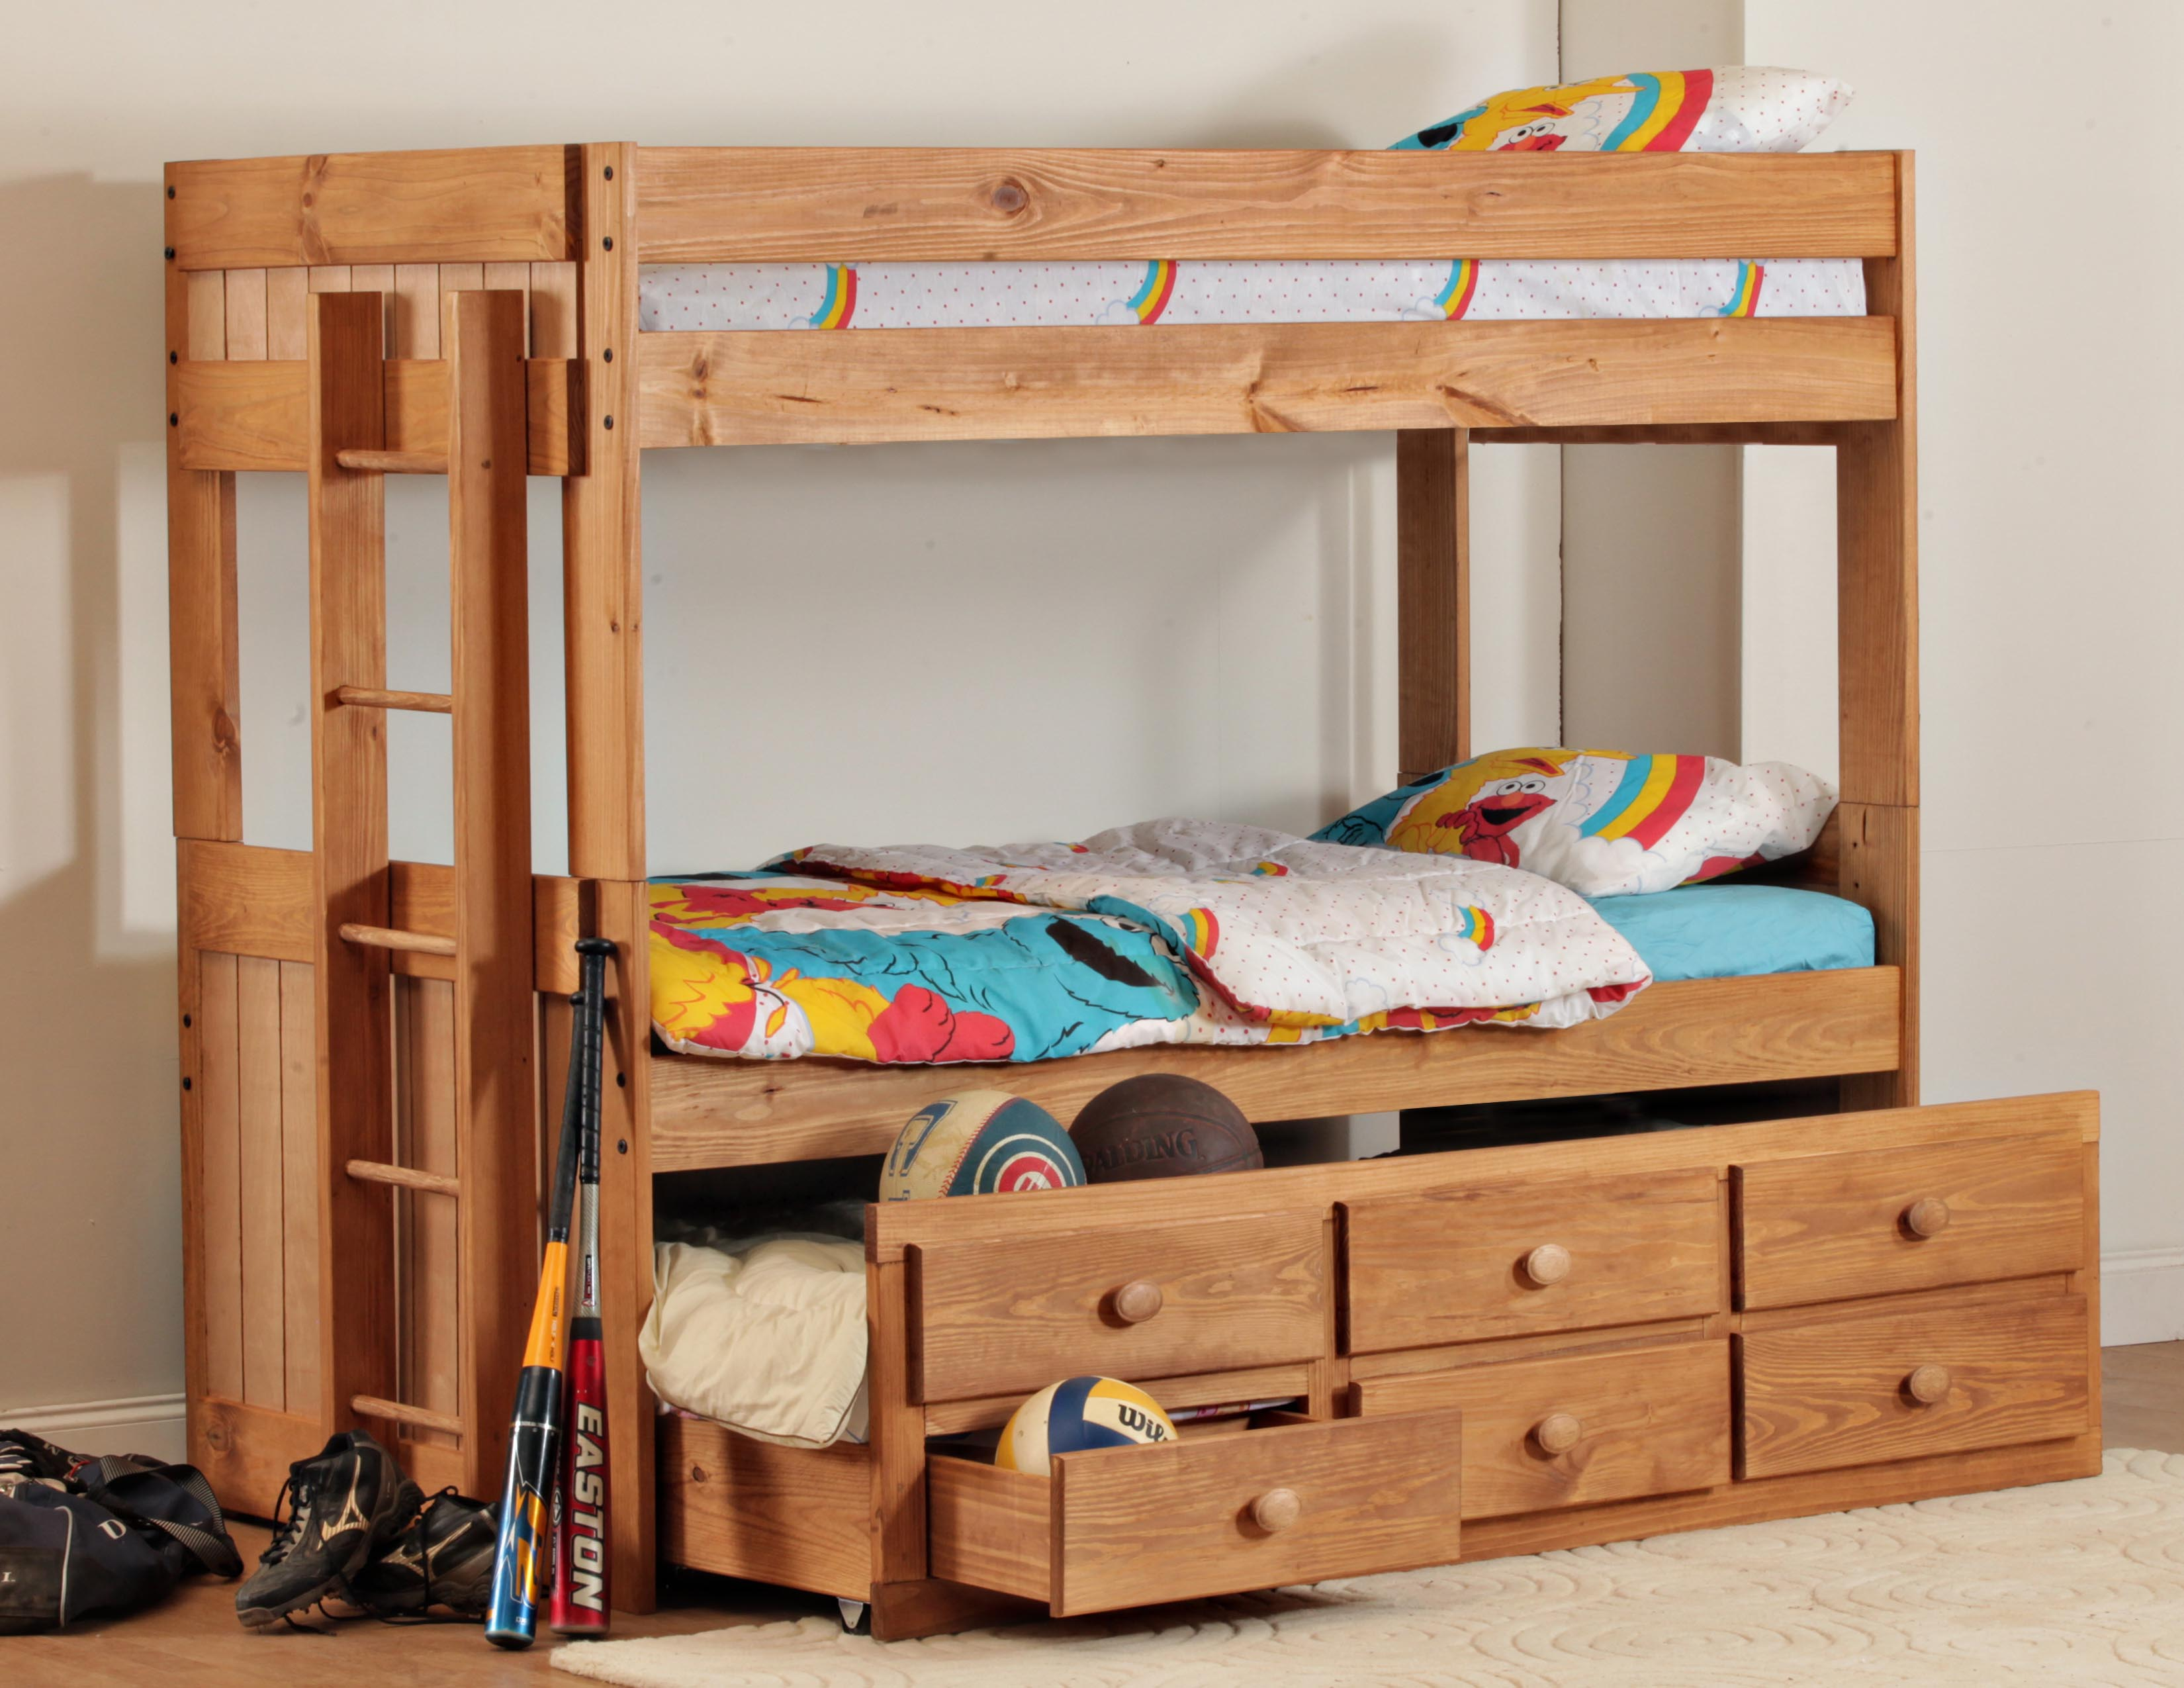 100 bunk beds with shelves stylish wooden bunk beds with st